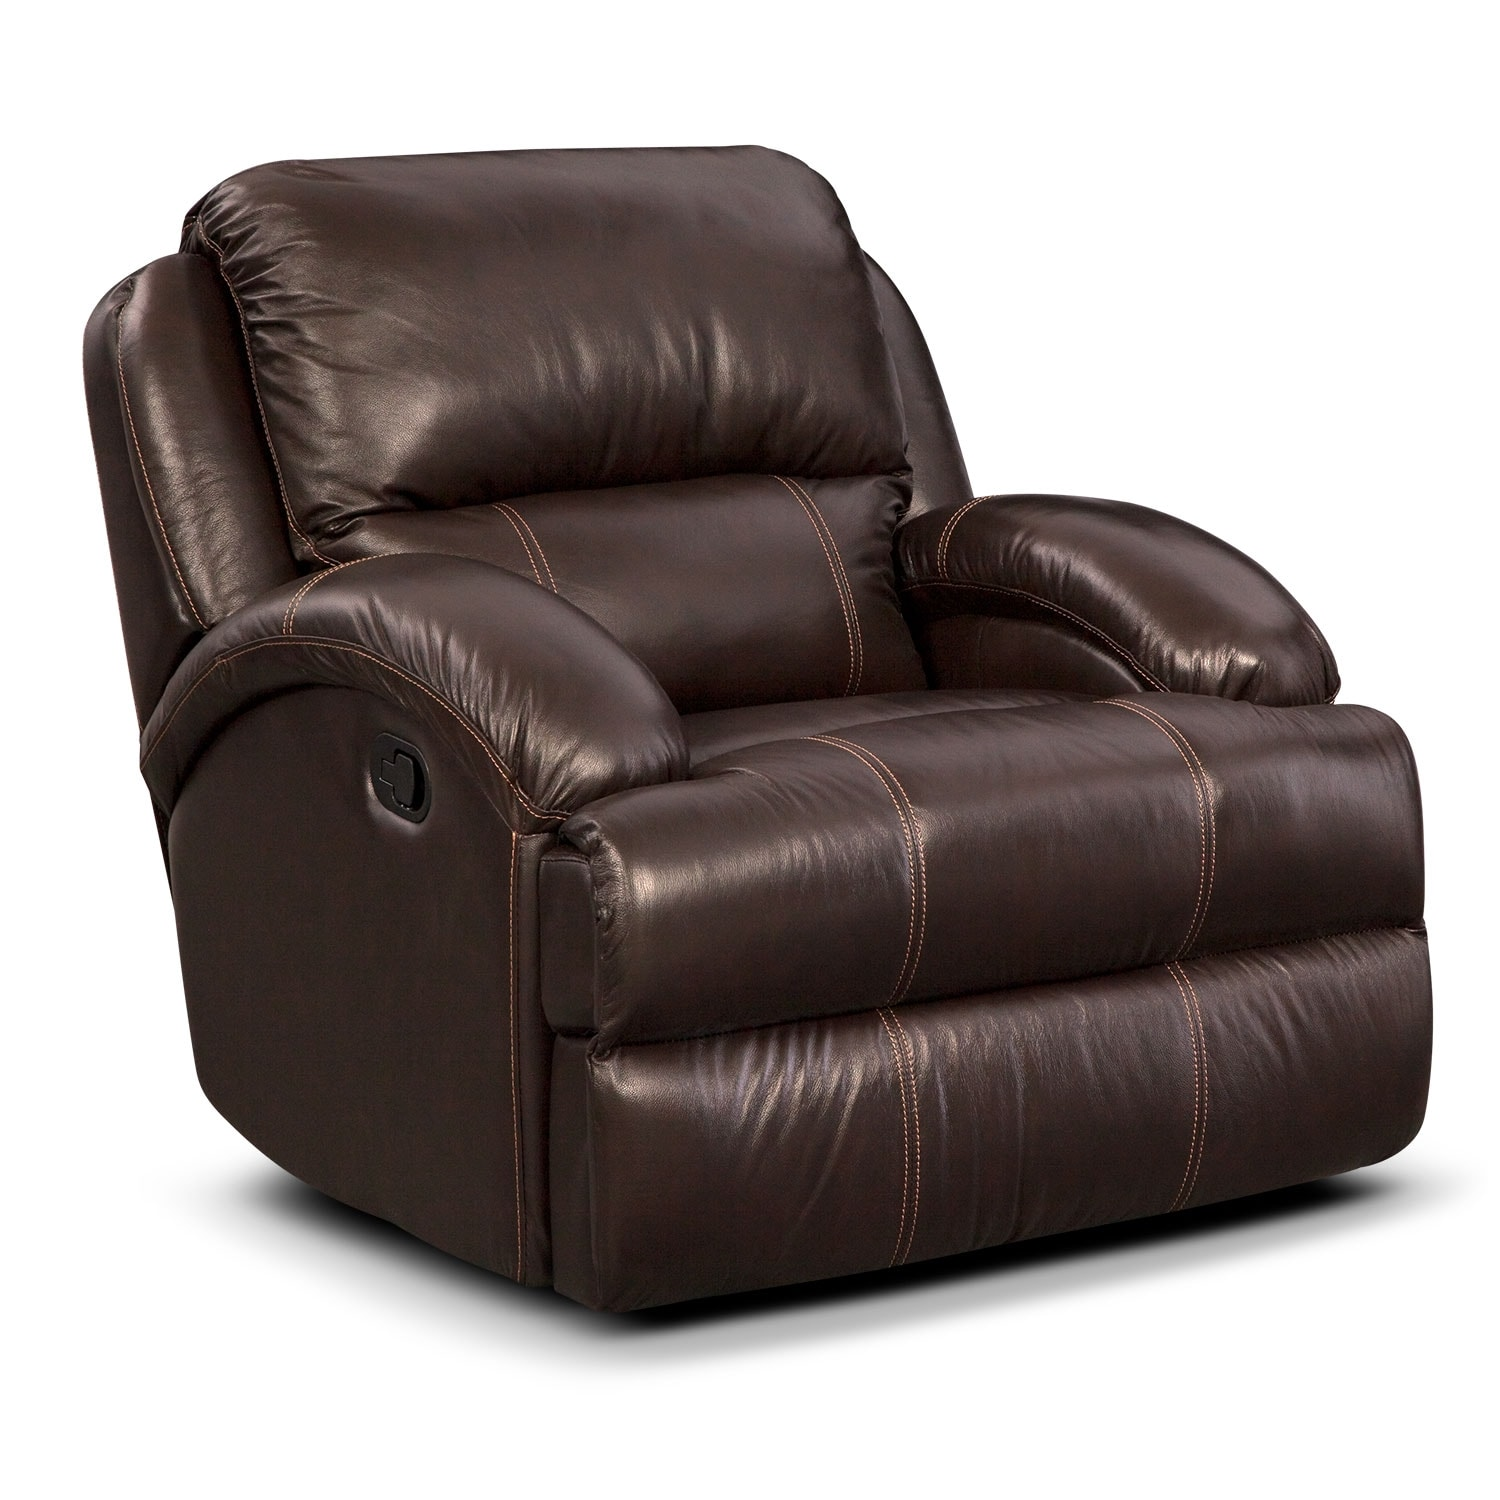 Living Room Furniture - Nolan Glider Recliner - Chocolate